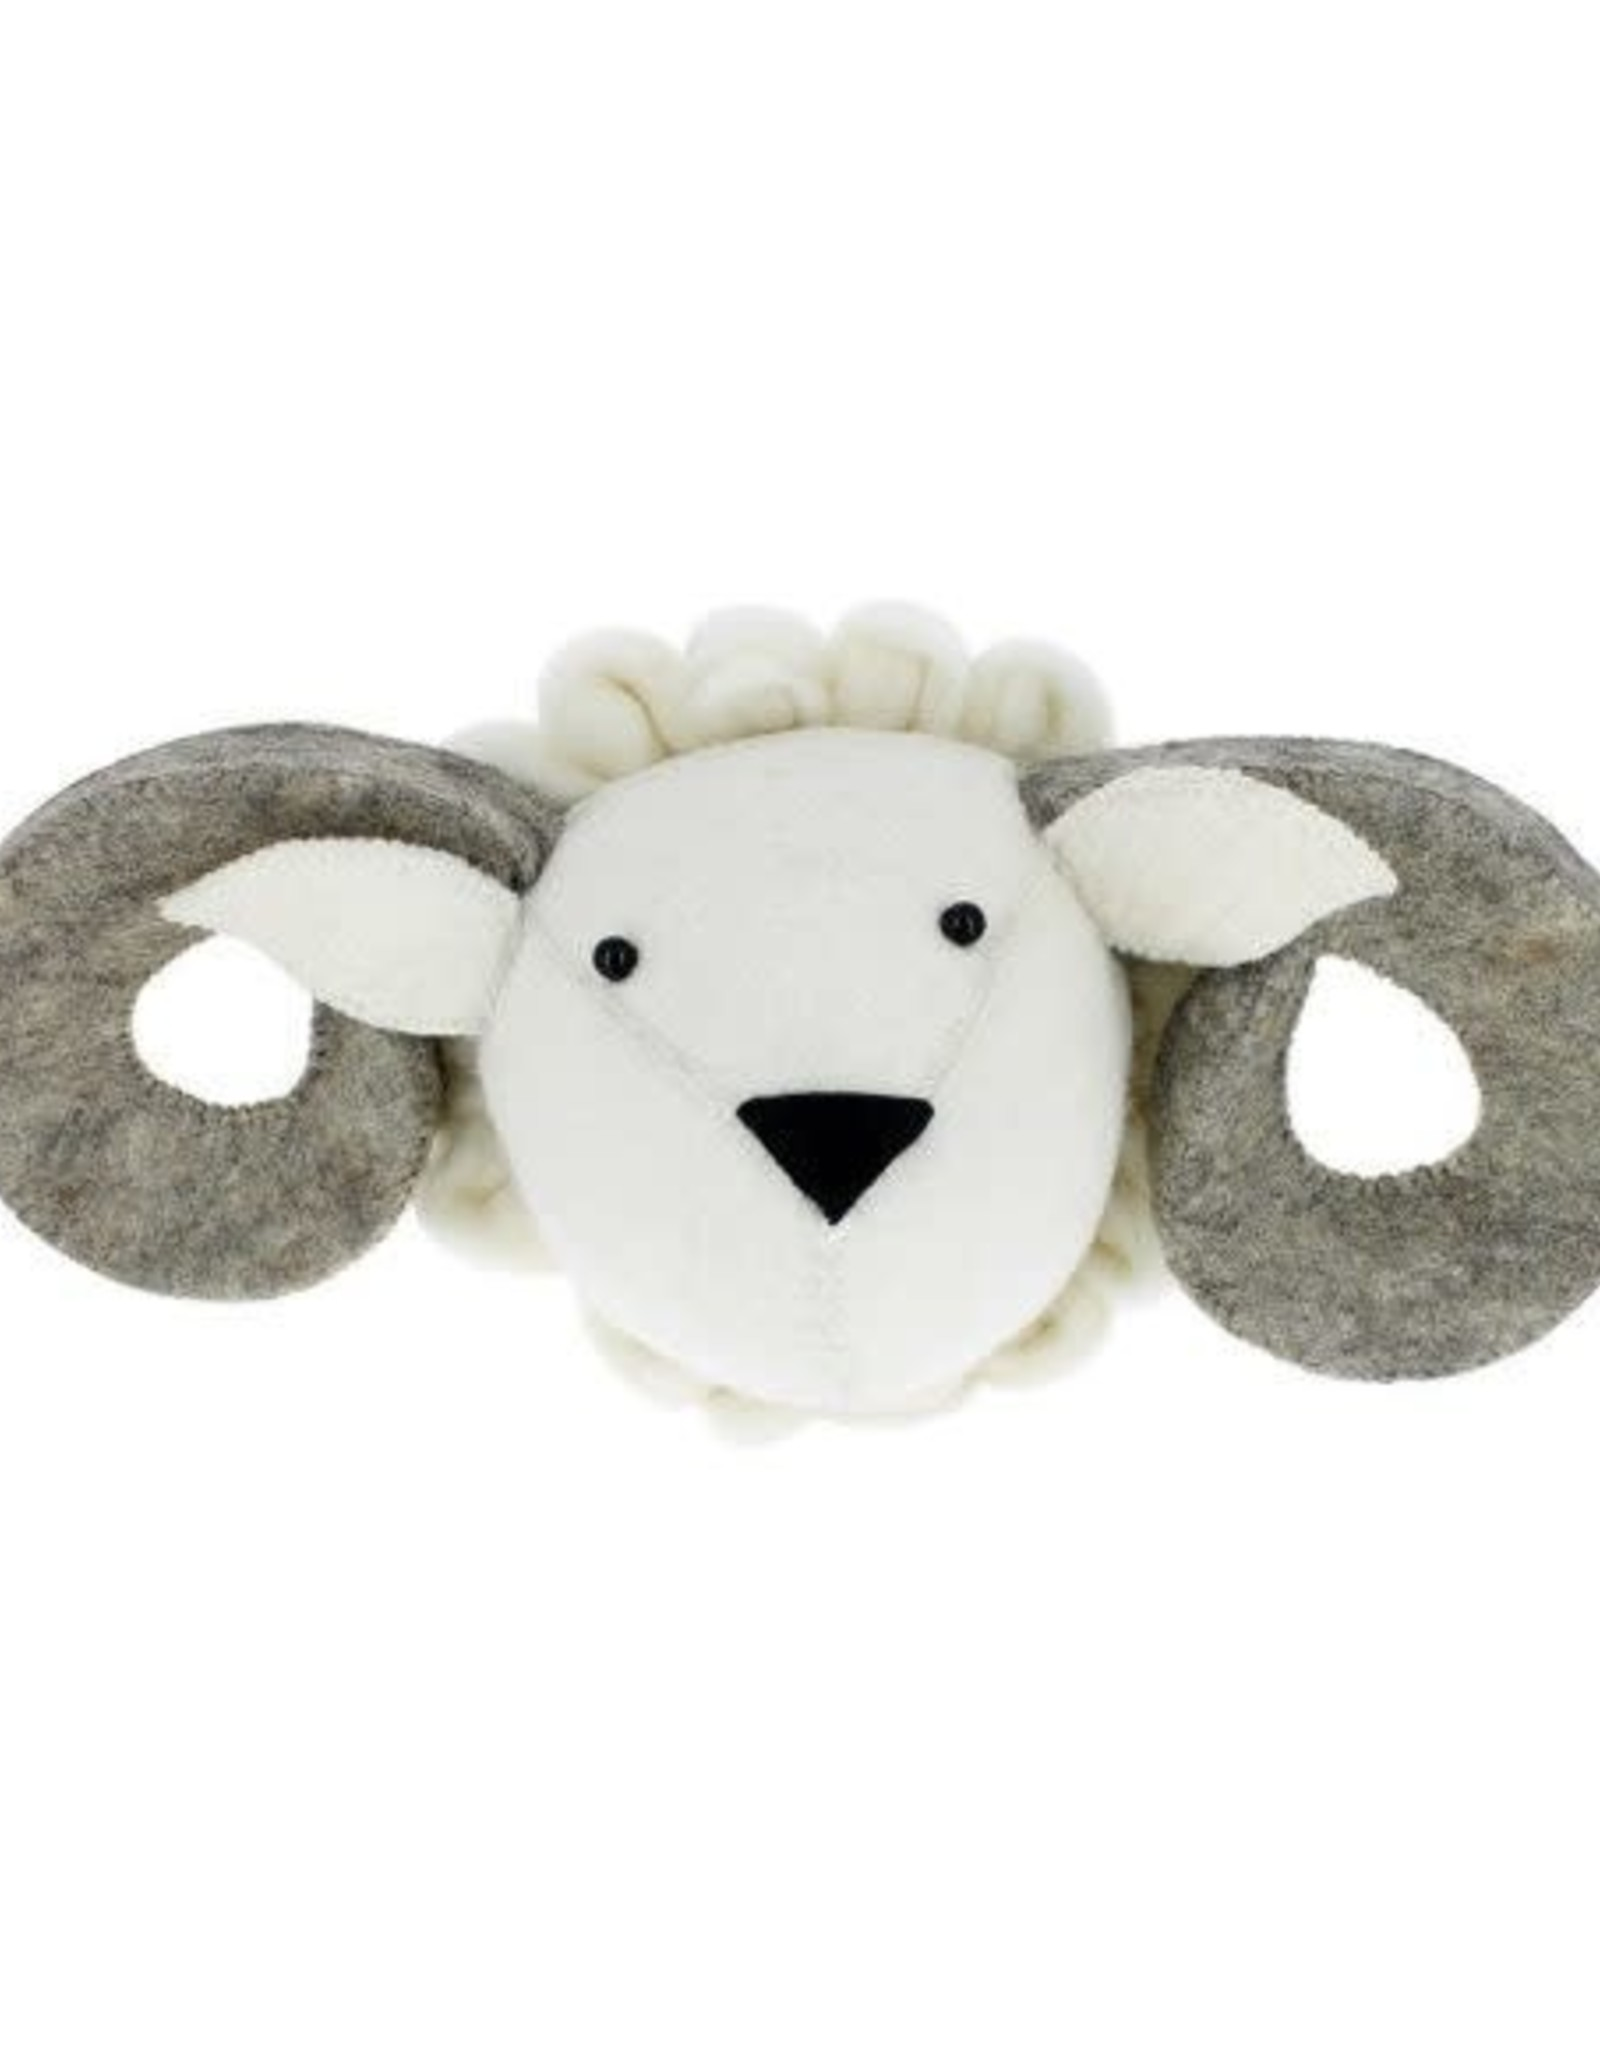 Gifts Limited Edition Ram Head